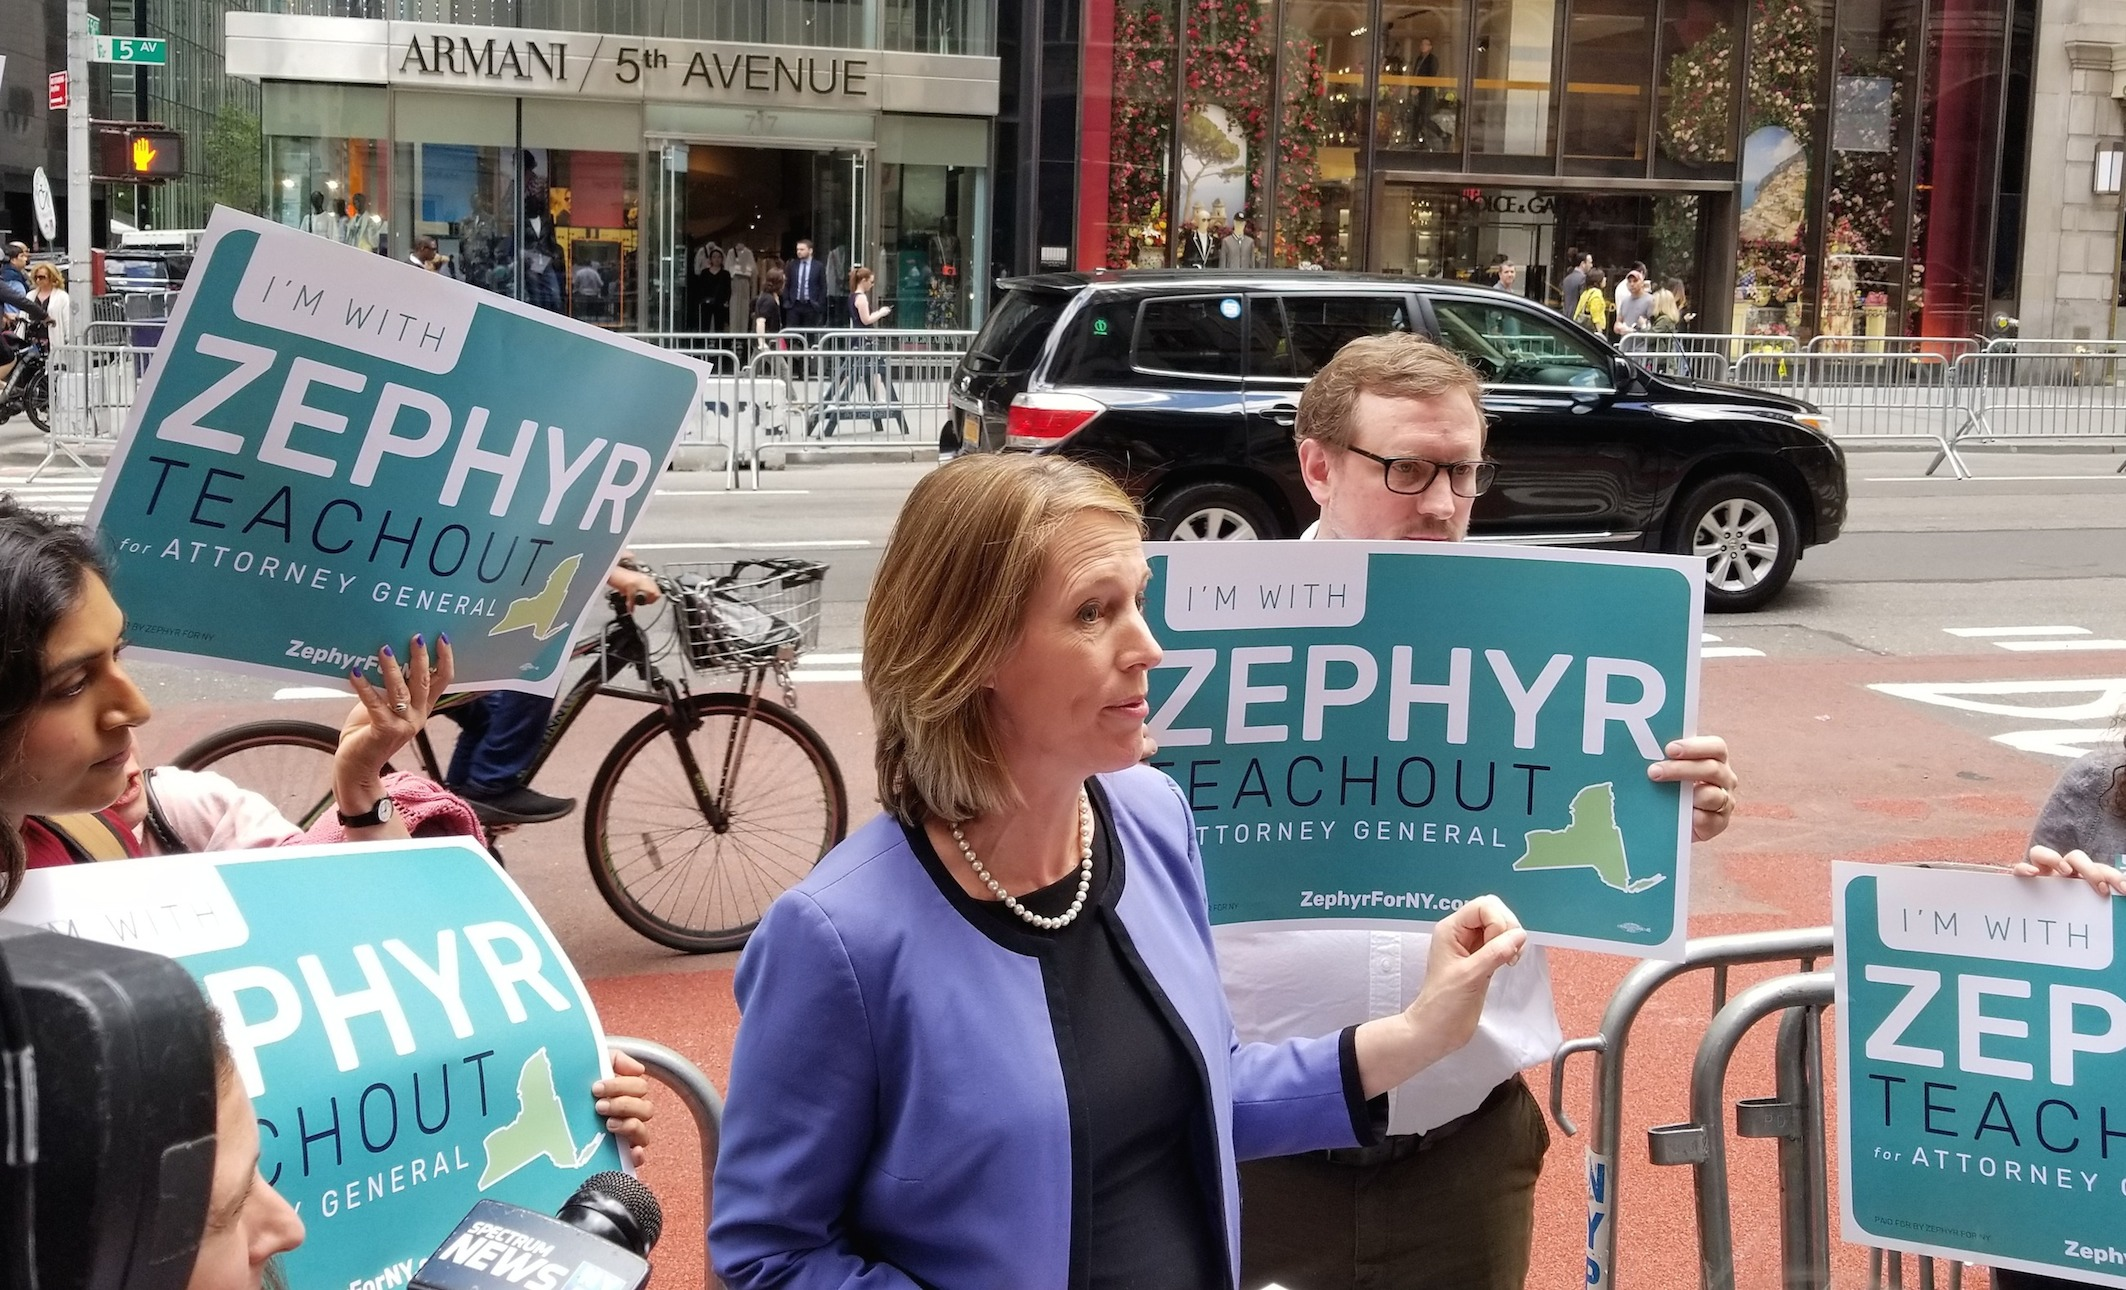 zephyr teachout AG launch trump tower